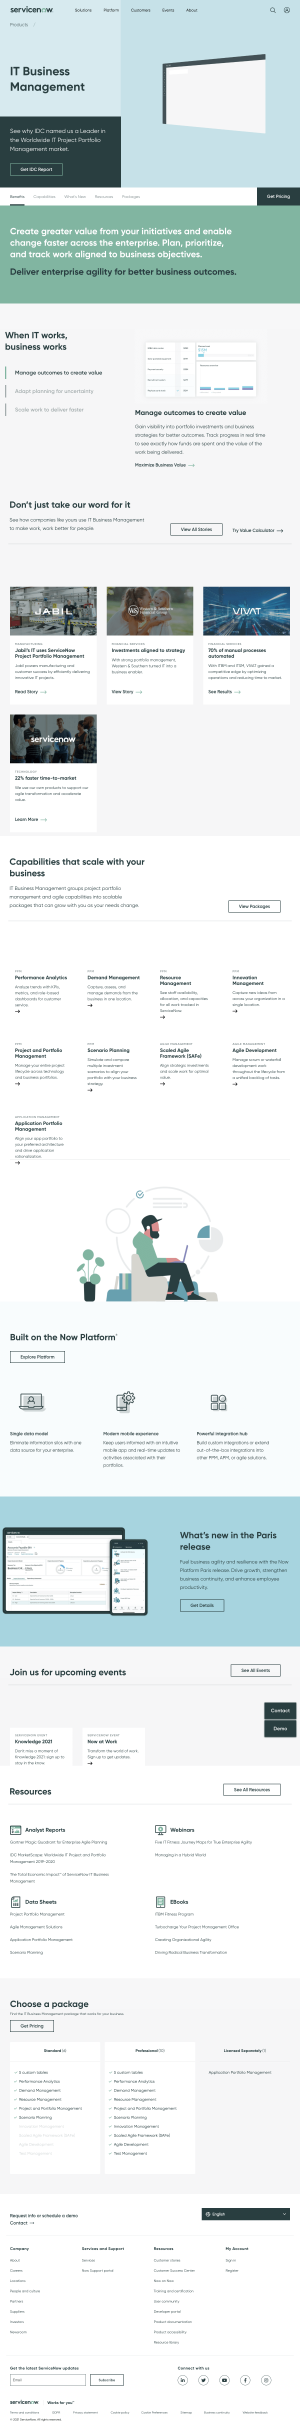 ServiceNow – Features page 2